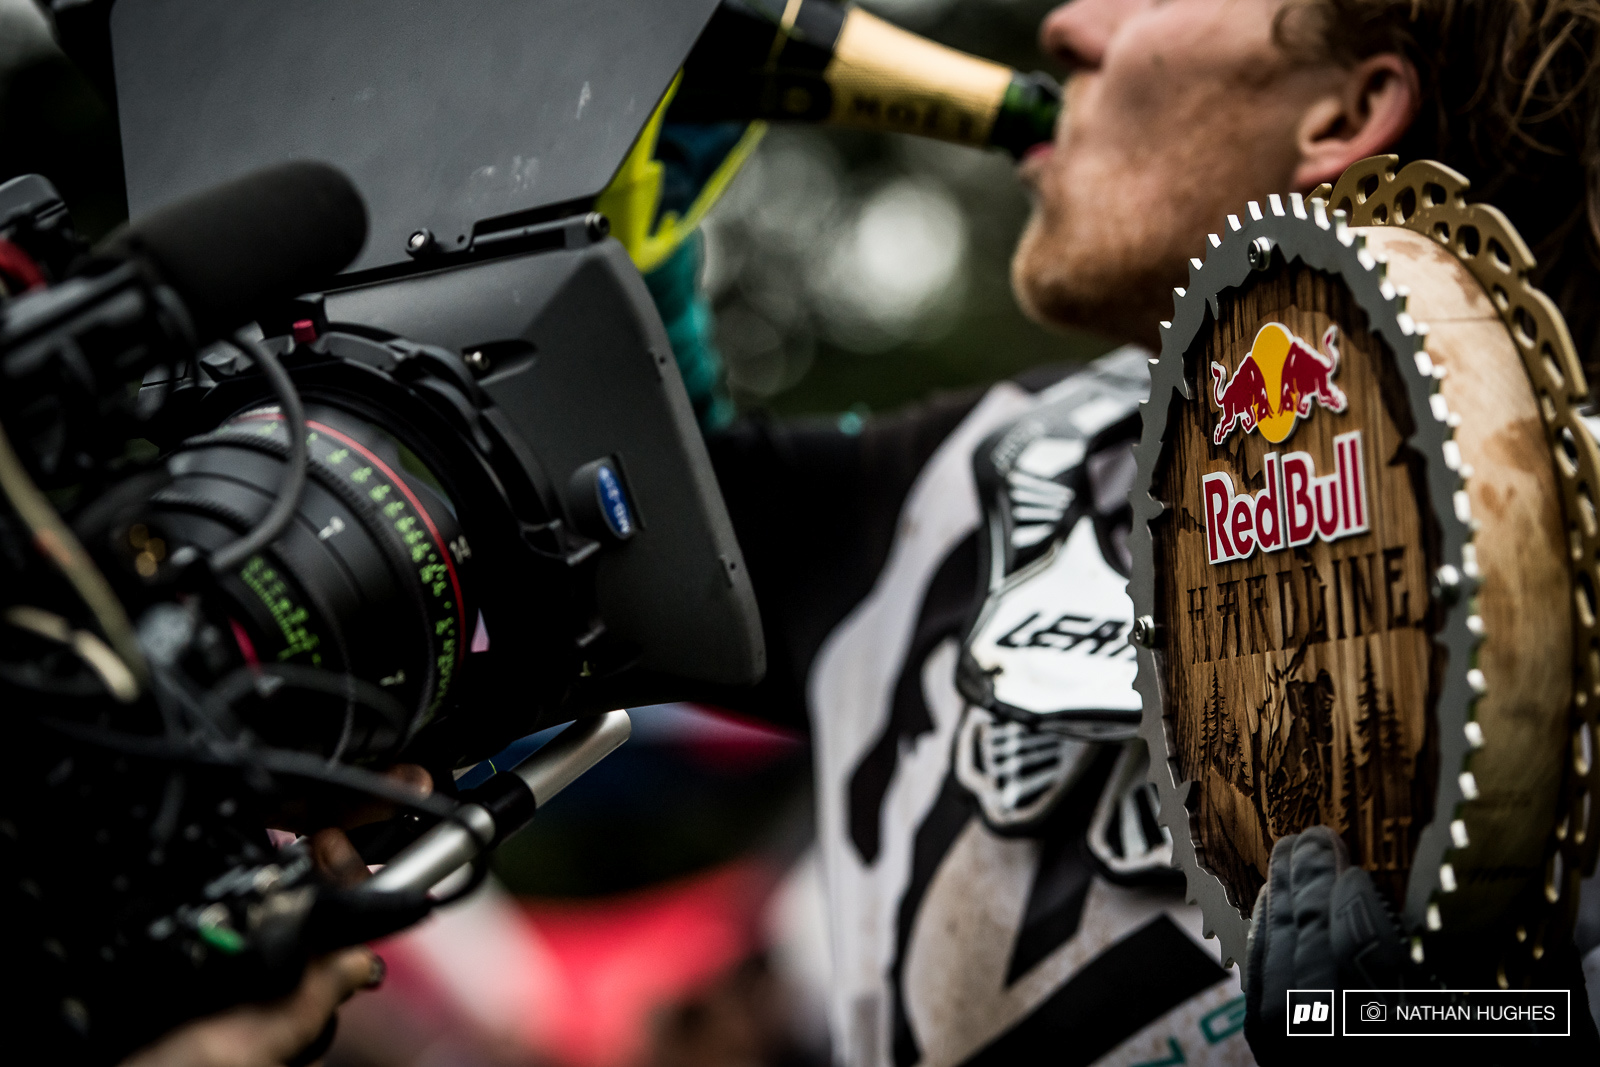 Redbull Hardline over and out.